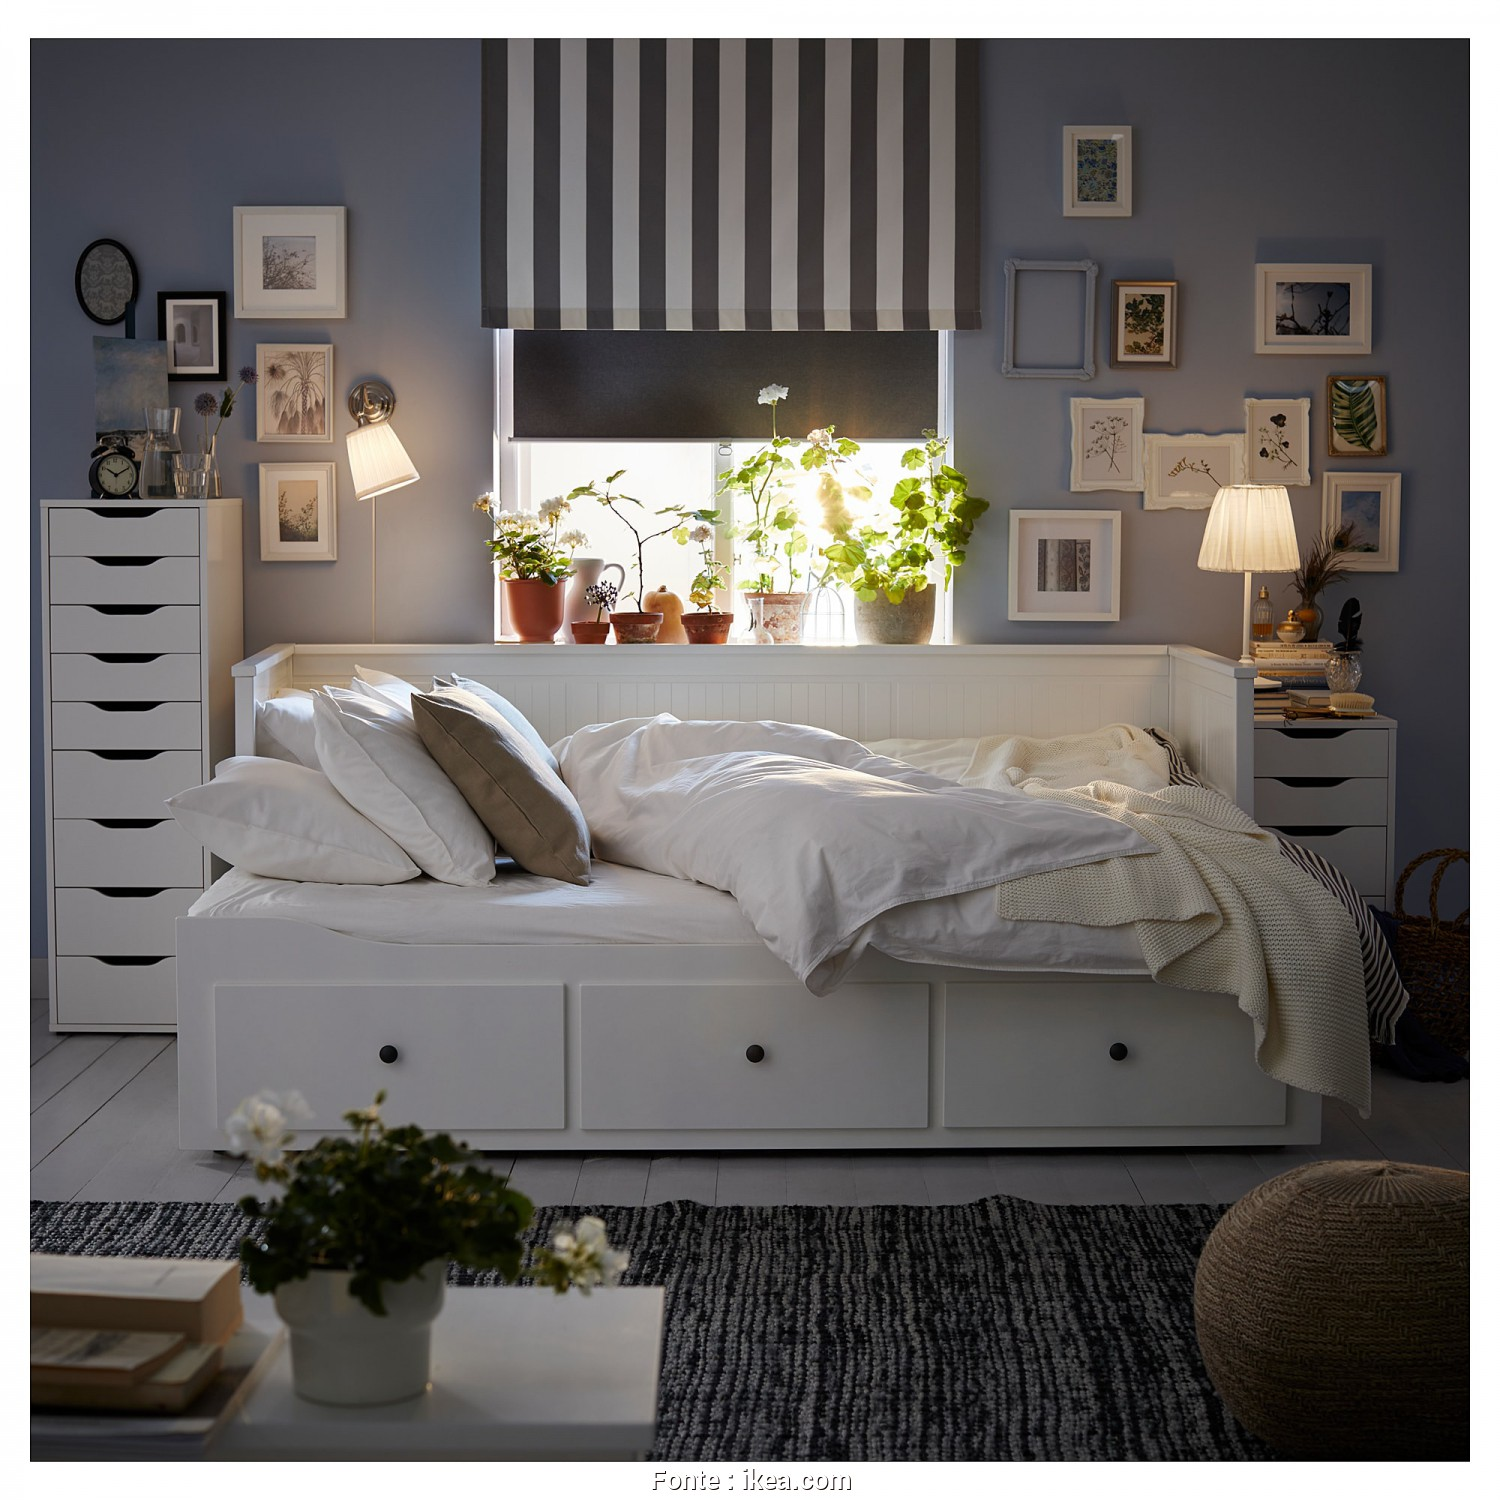 Hemnes Letto Video, Delizioso HEMNES, Daybed With 3 Drawers/2 Mattresses, White, Meistervik Firm $629.00